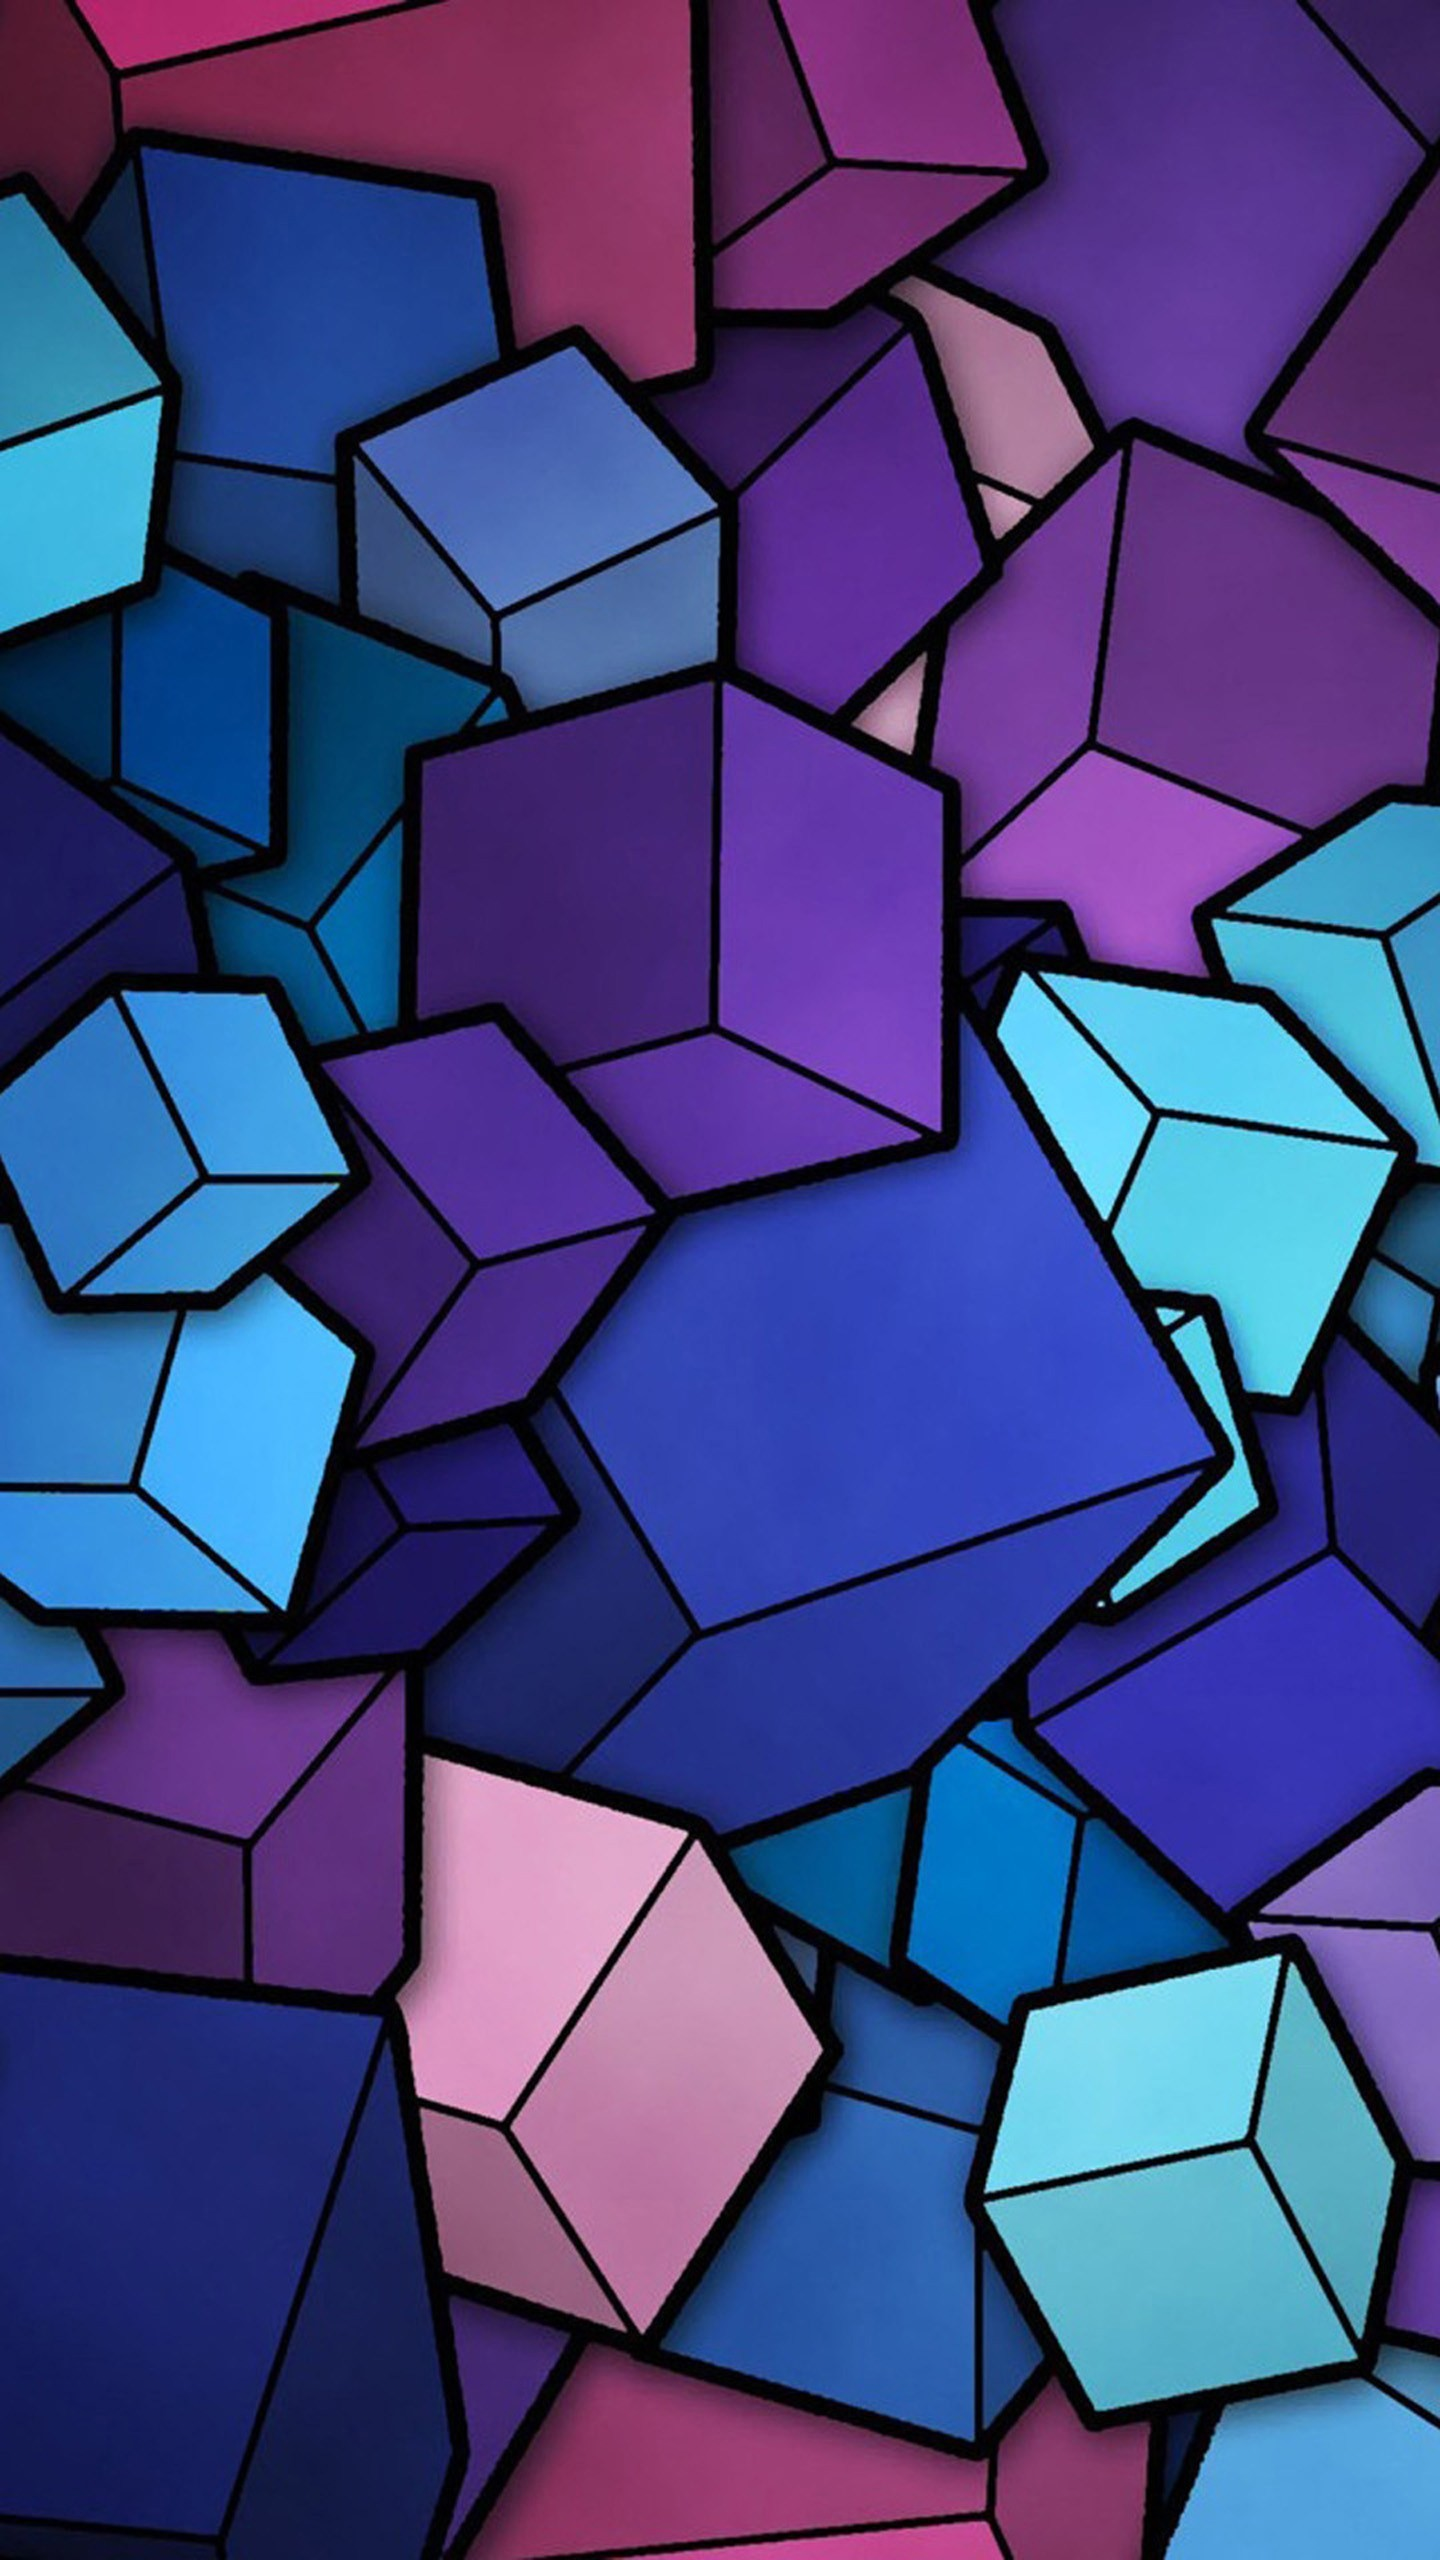 Abstract Cubes Blue Purple Wallpaper Galaxy S6, LG G4, HTC One M9